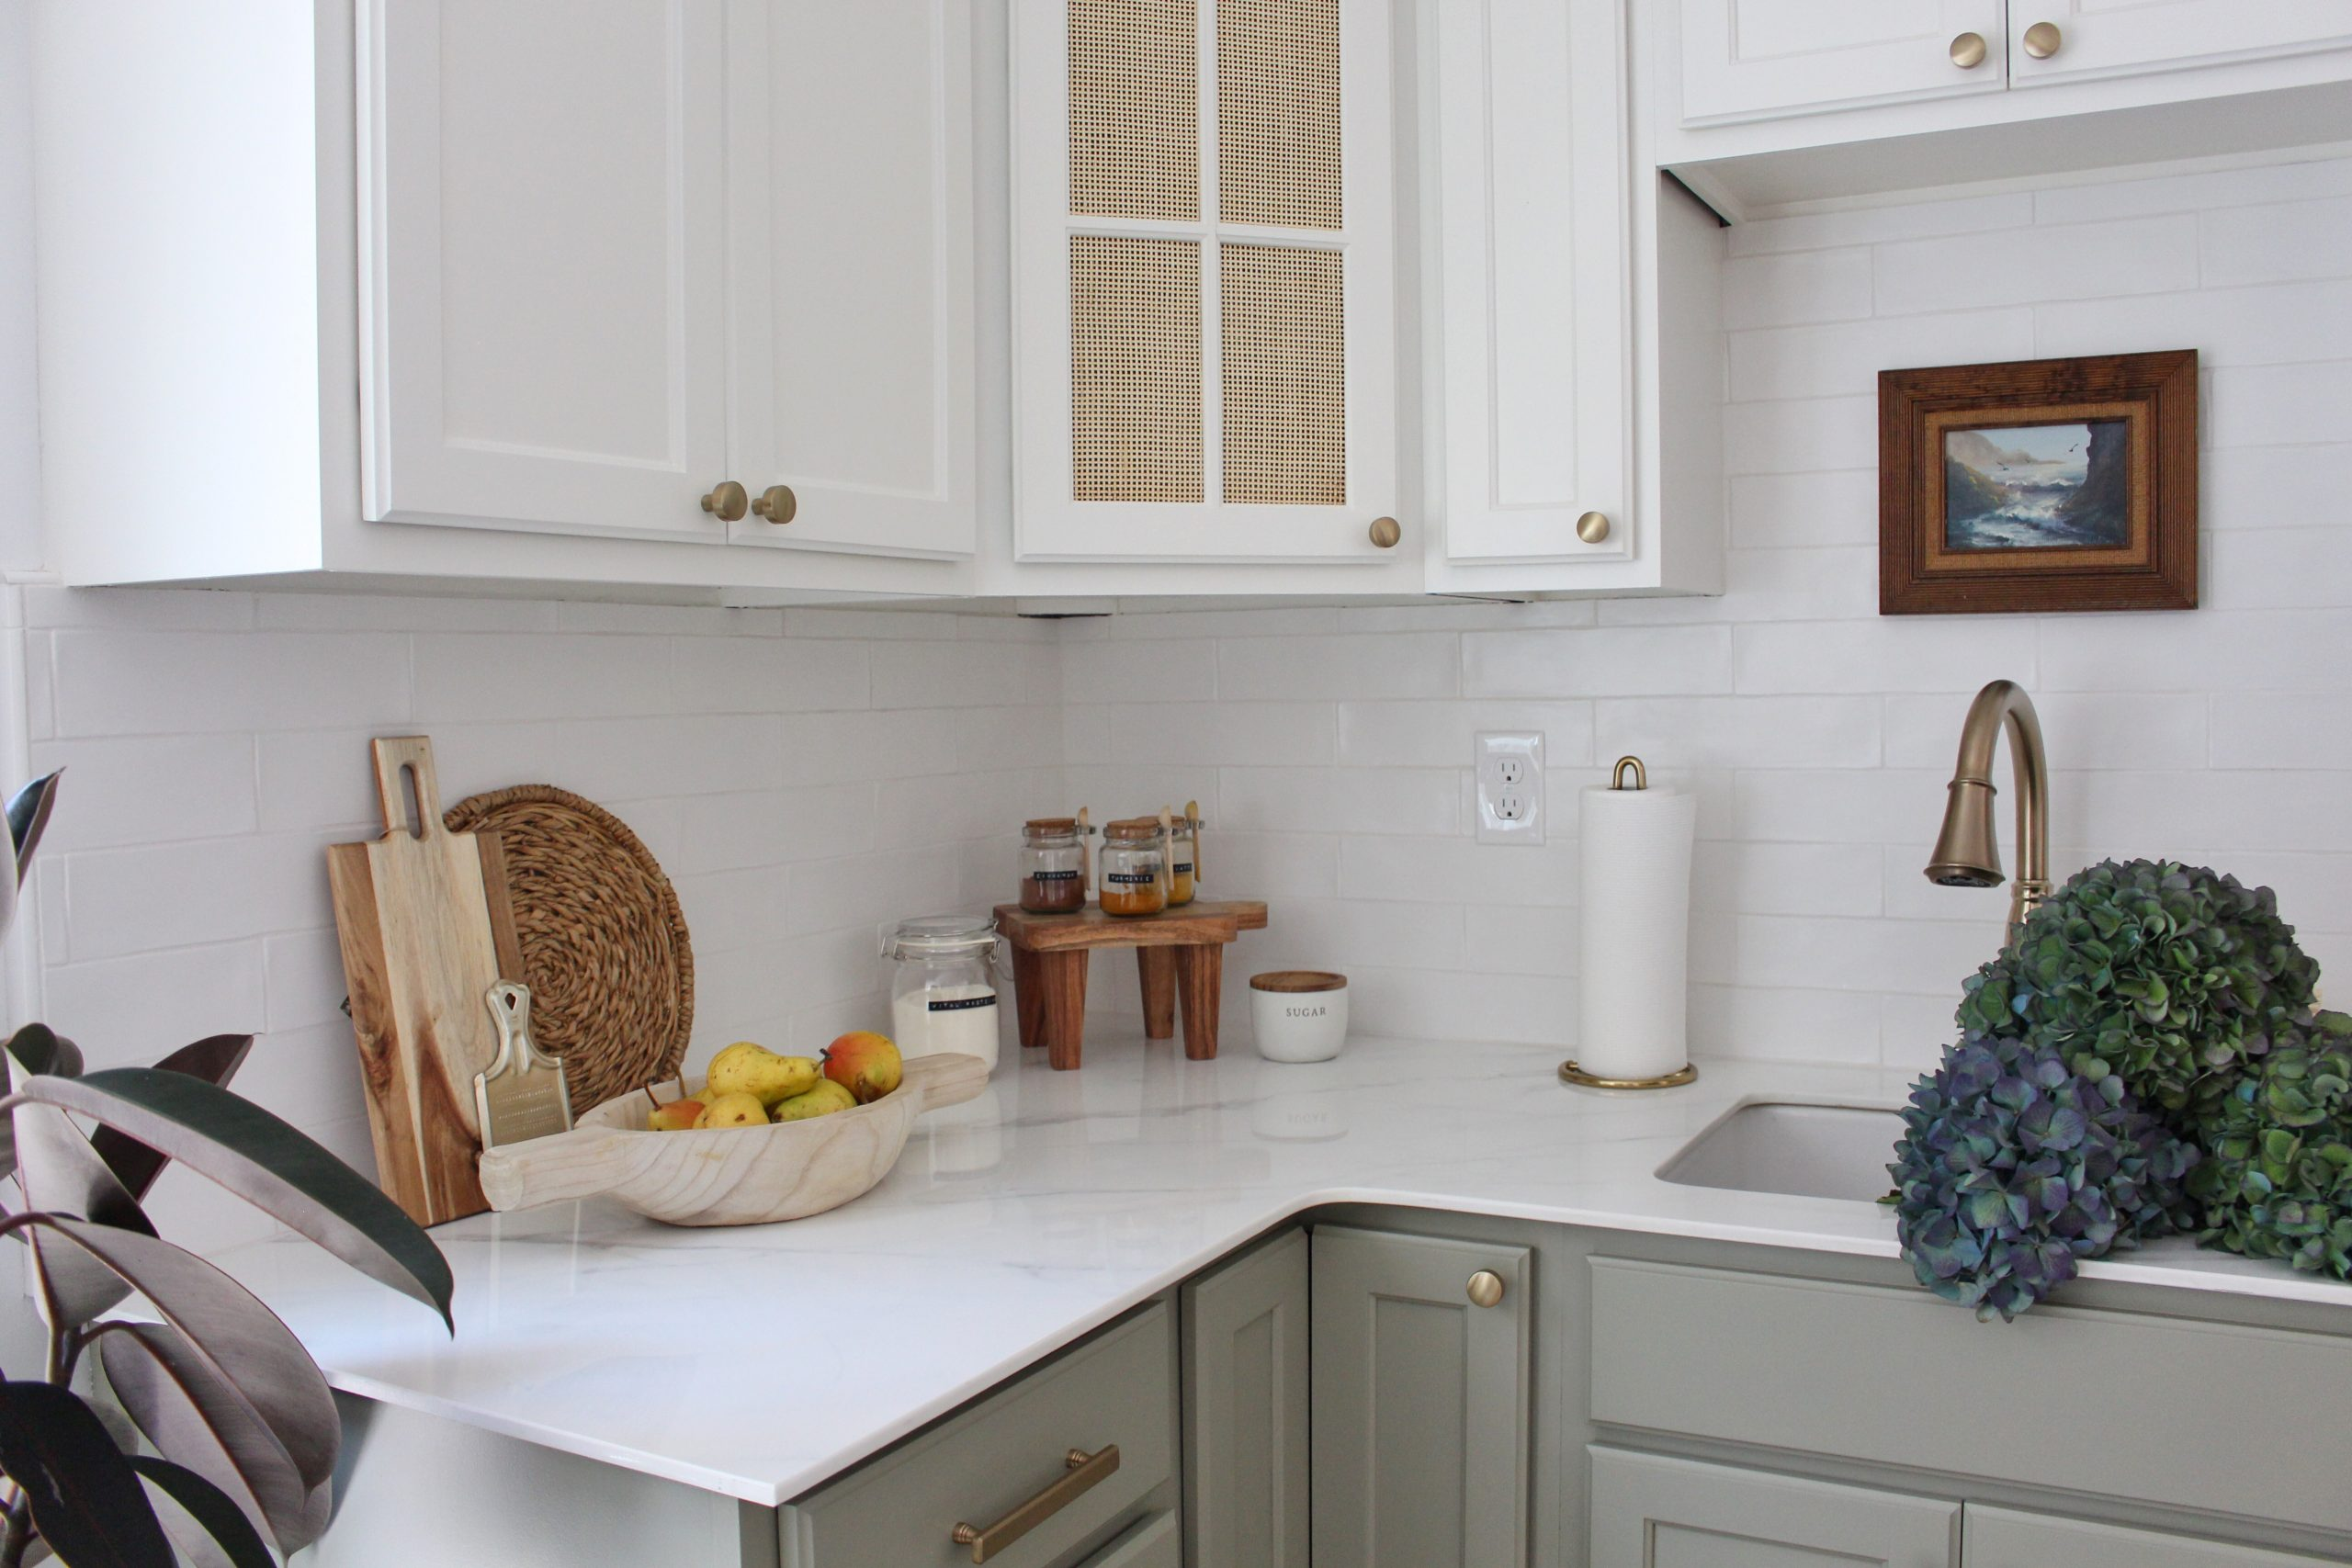 Porcelain Countertops and Subway Tile Backsplash